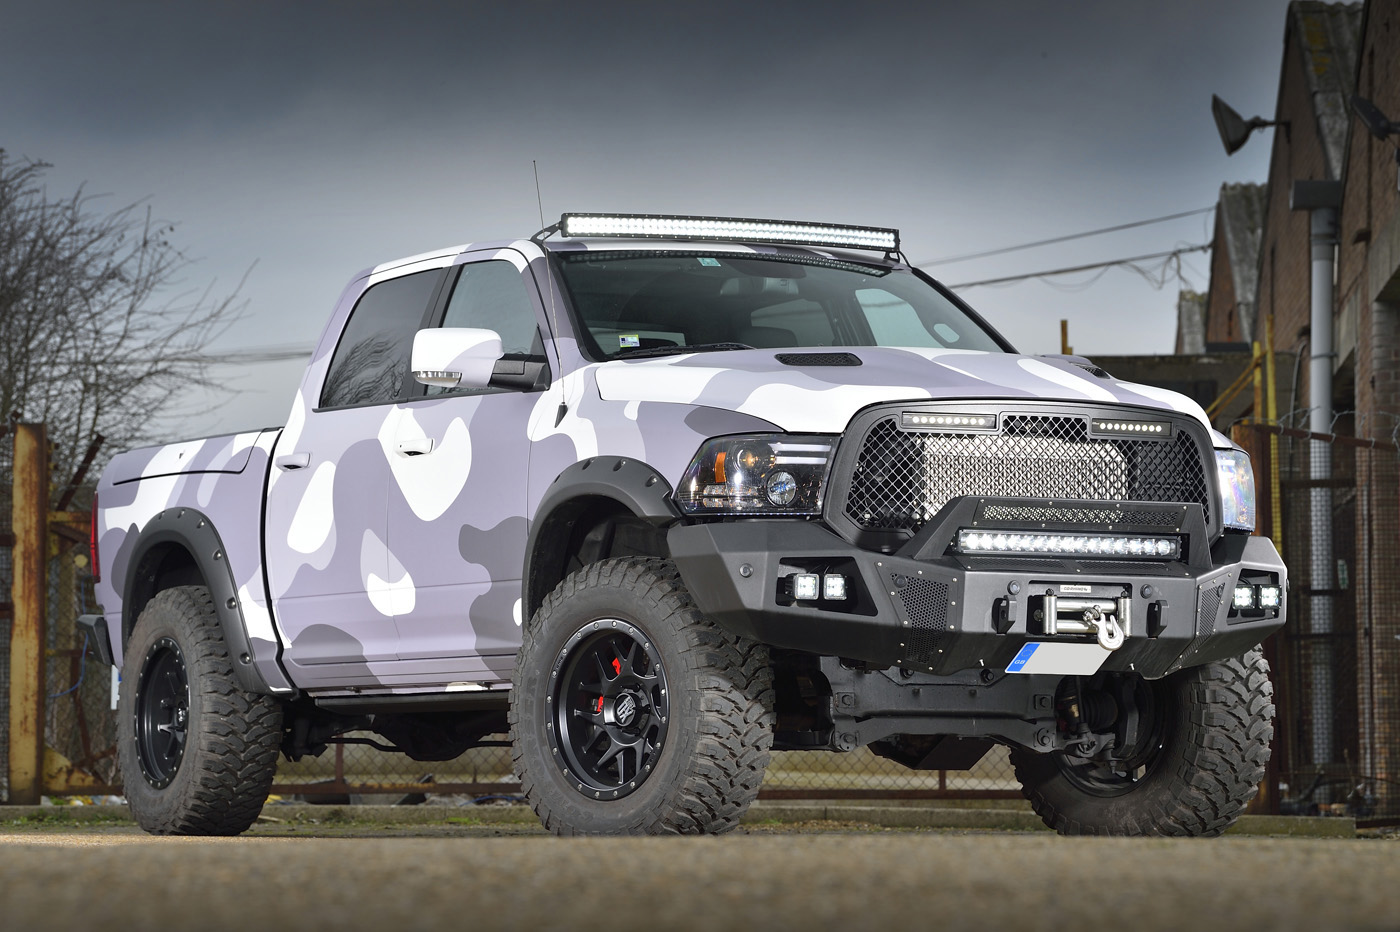 American Bespoke - David Boatwright Partnership - Dodge Ram